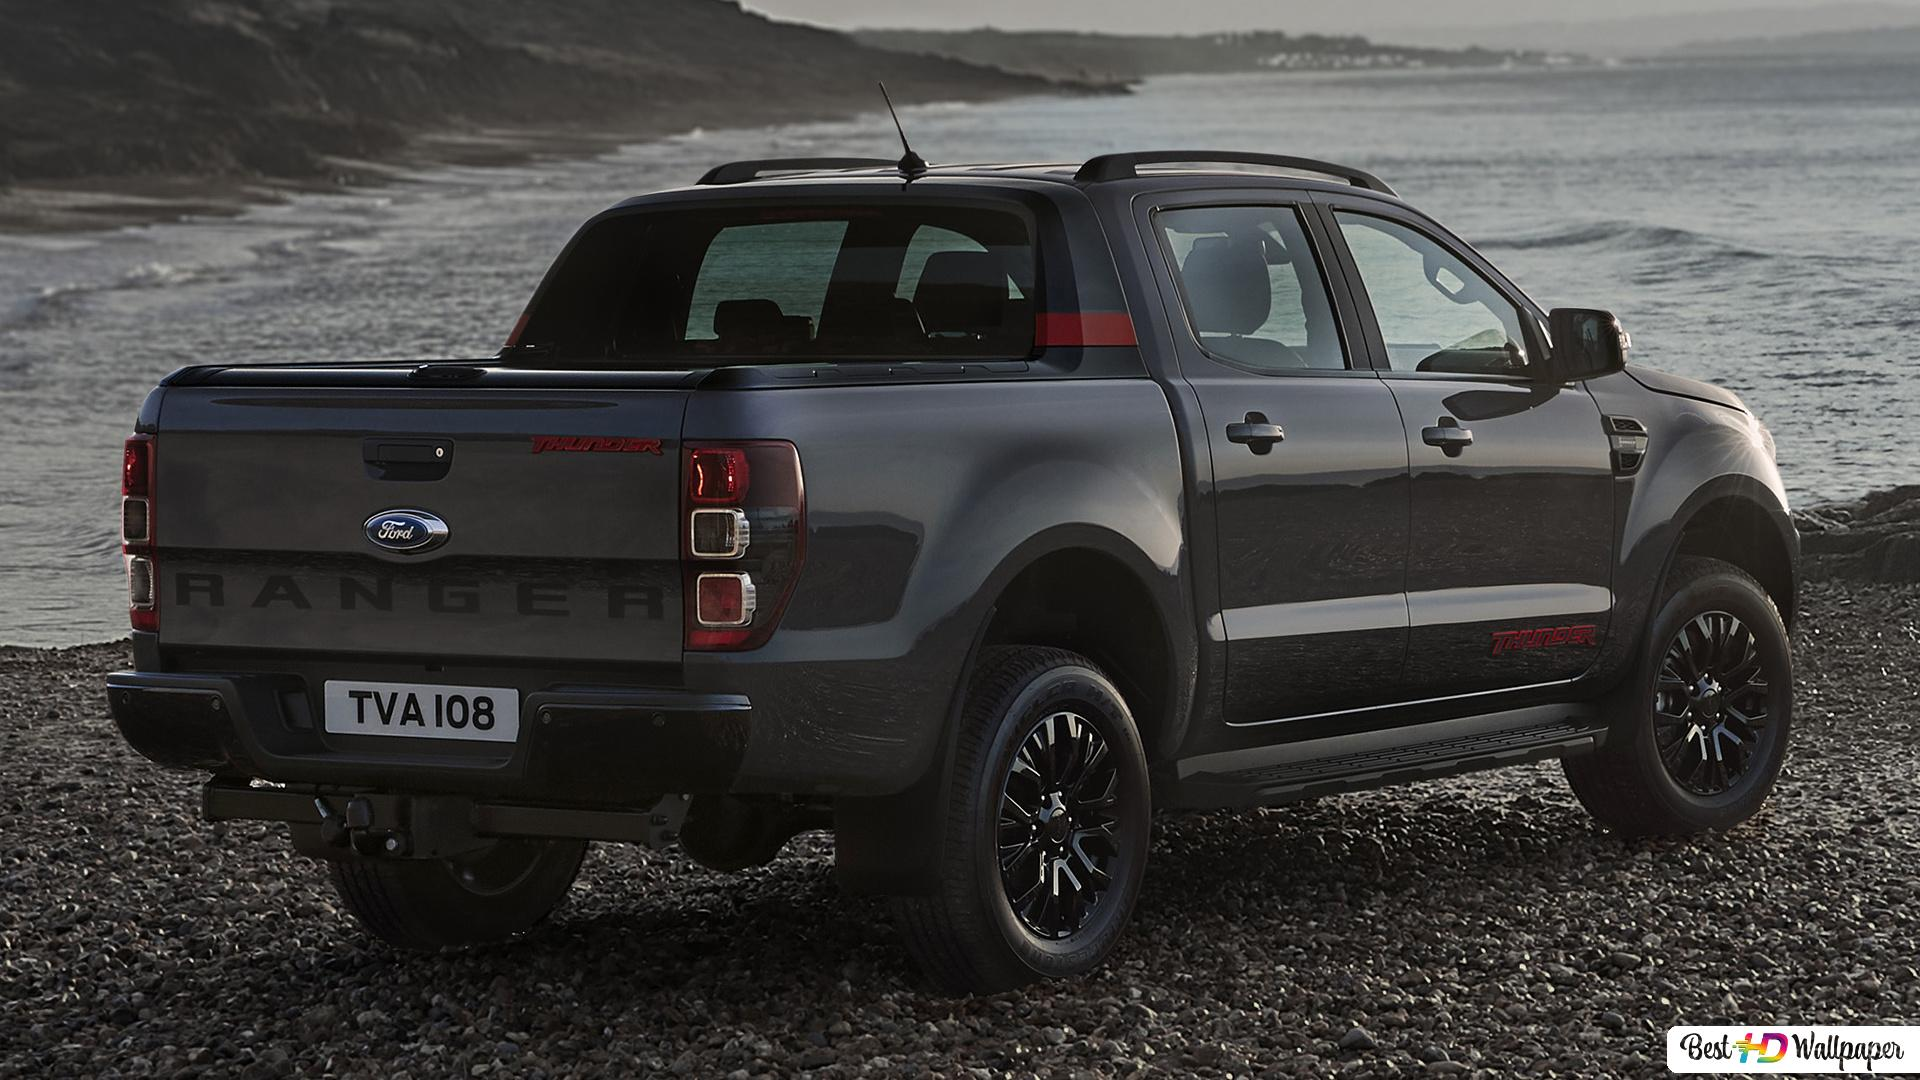 Ford Ranger Thunder Double Cab 2020 03 Hd Wallpaper Download